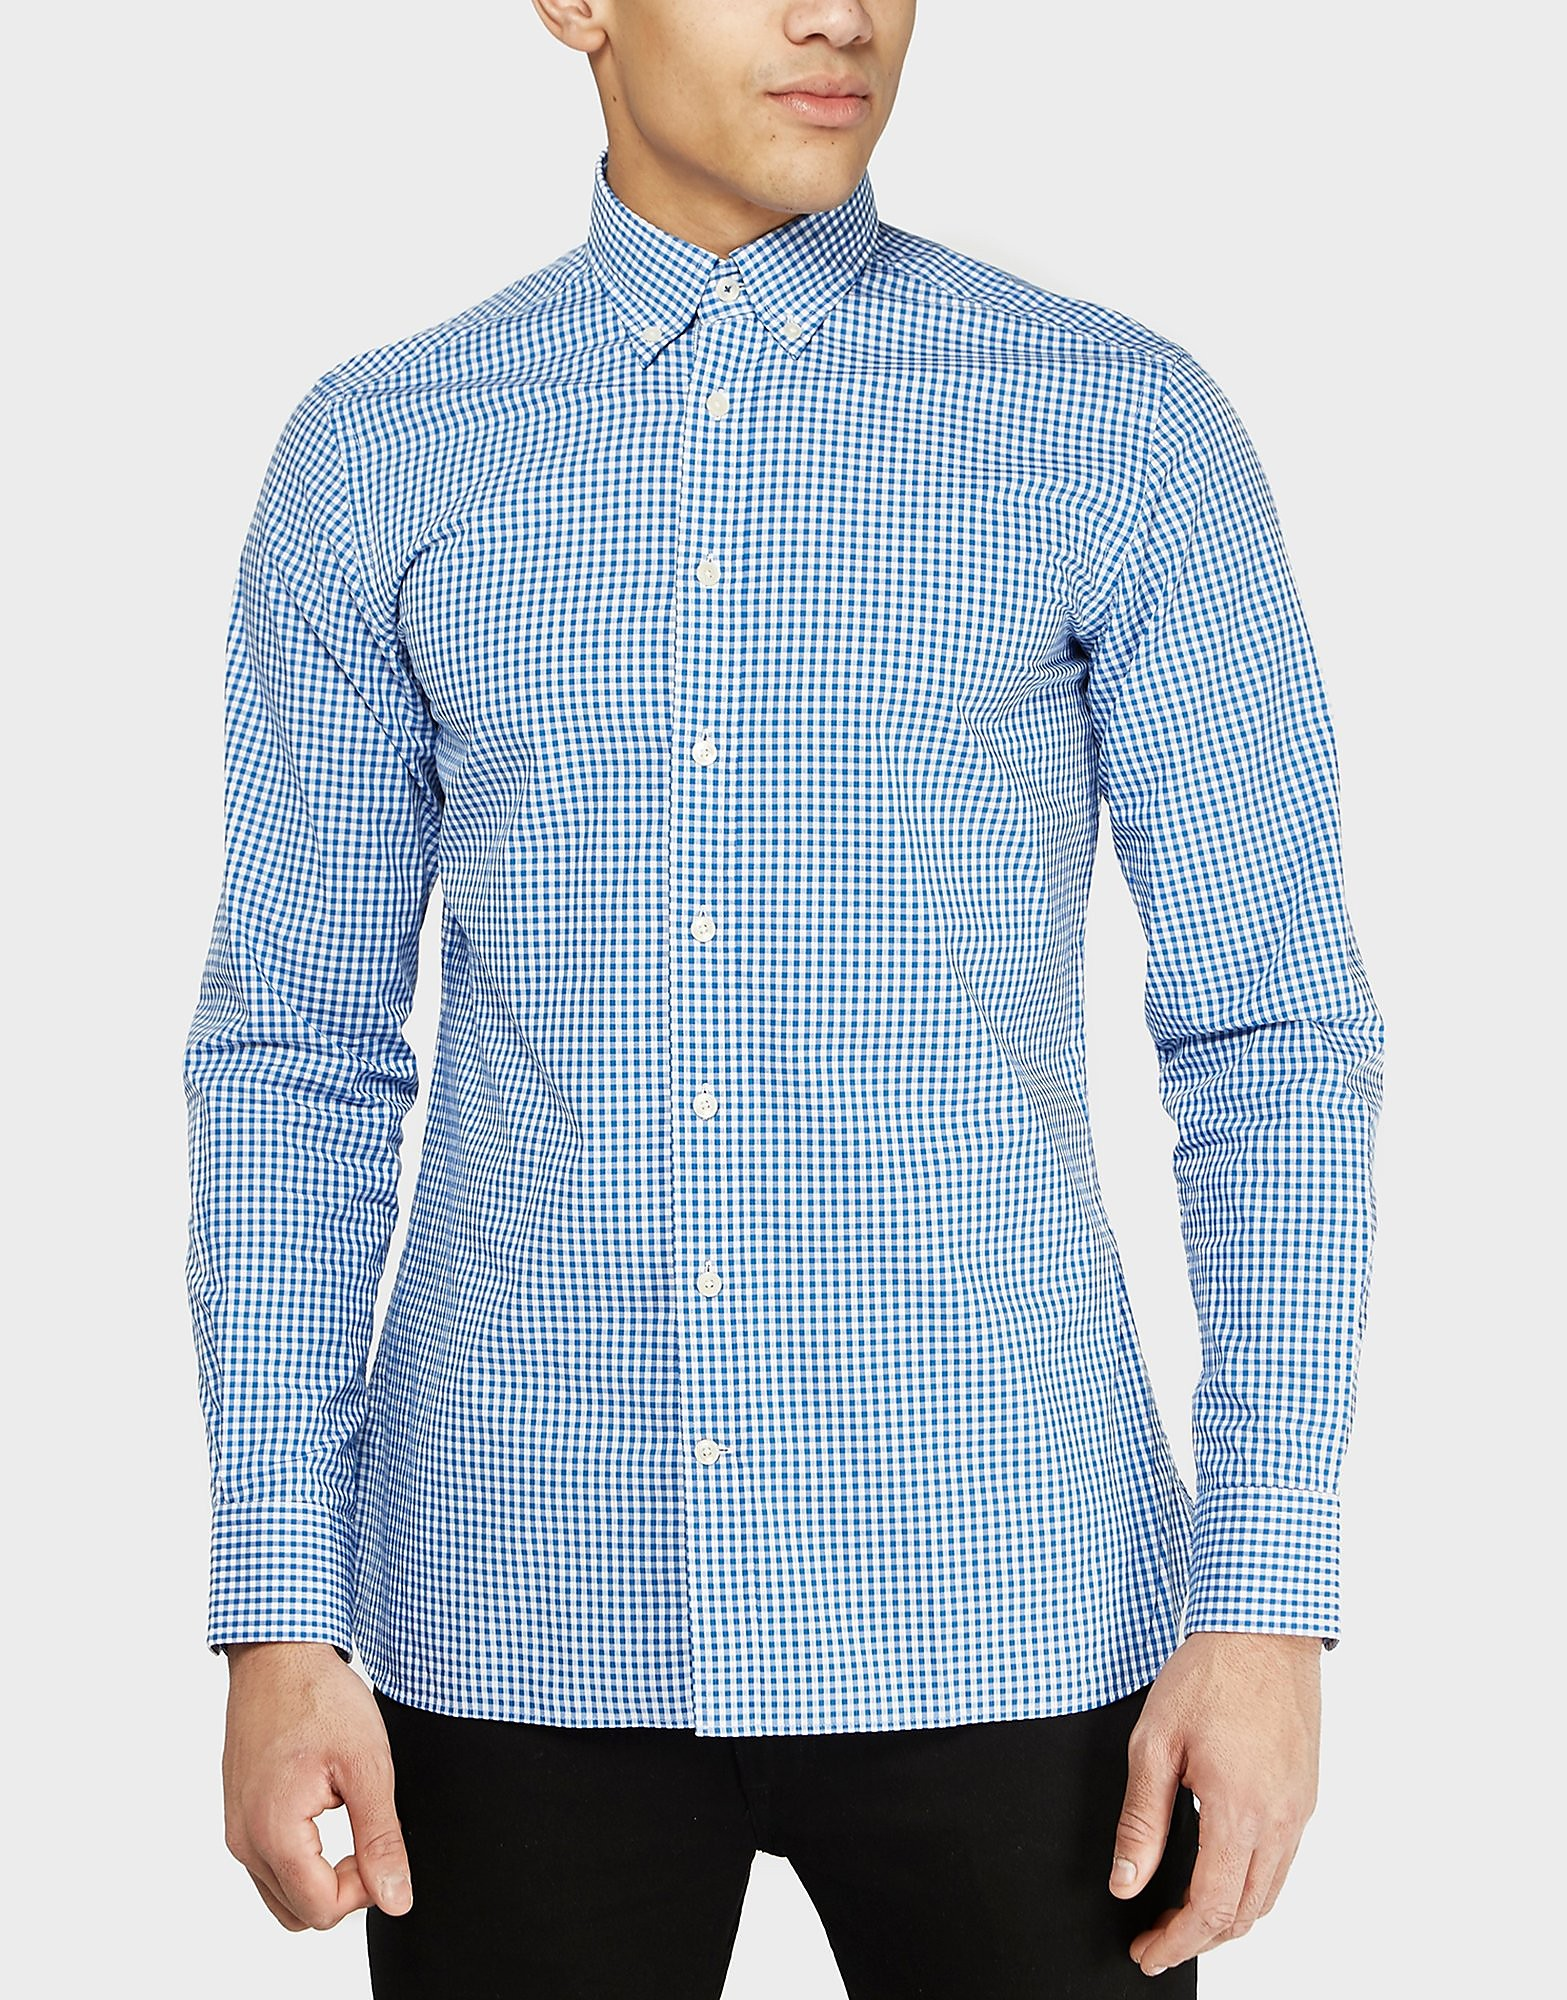 HACKETT Gingham Shirt